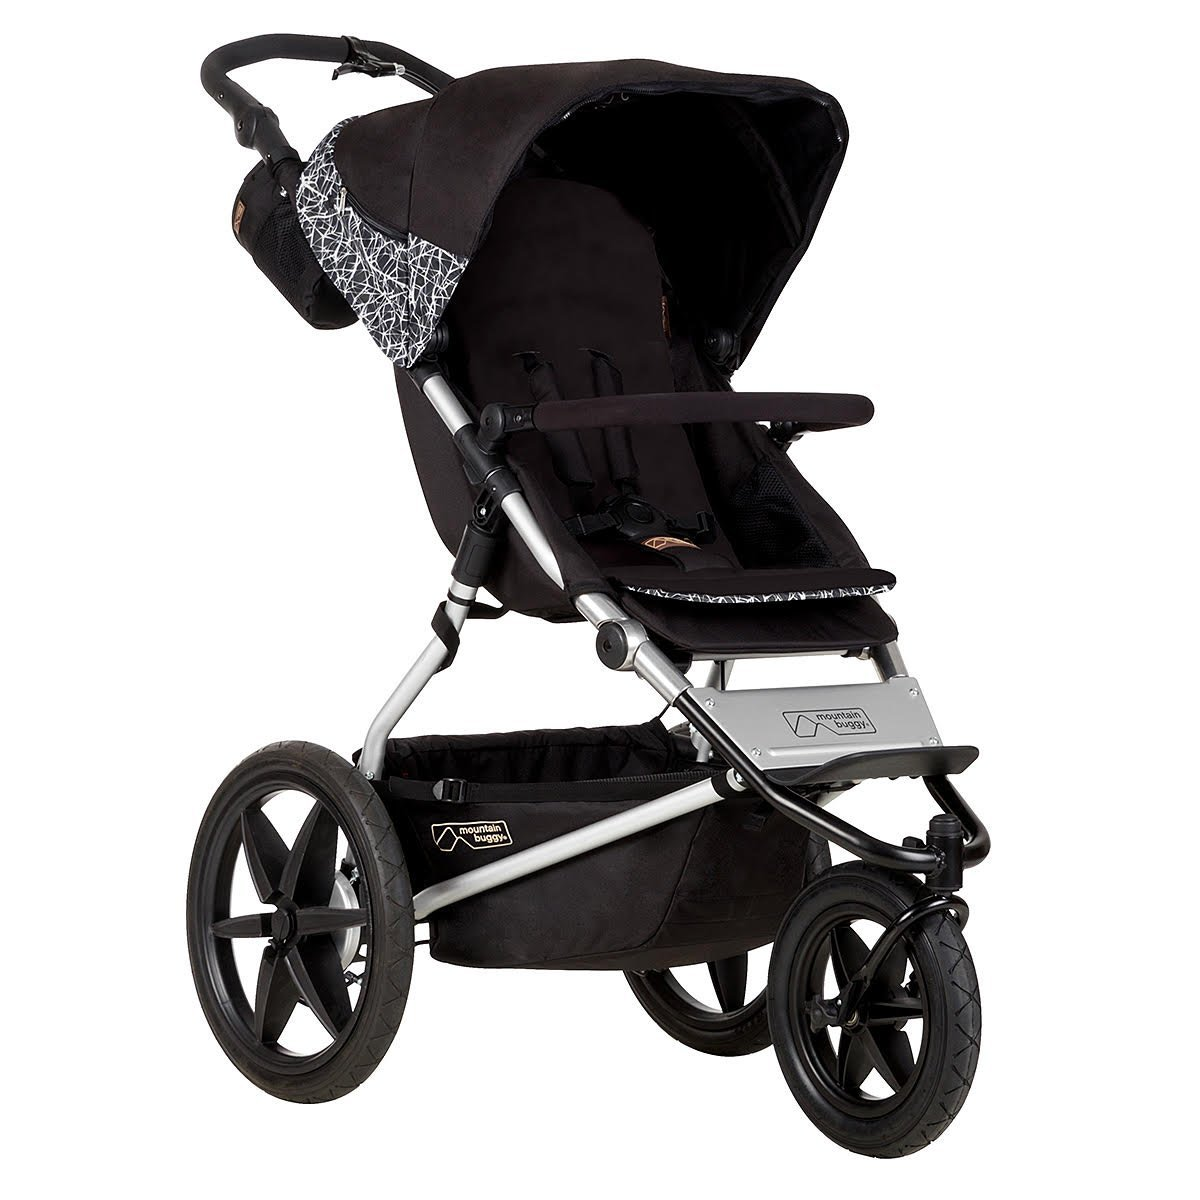 Doppel Kinderwagen Urban Jungle Mountain Buggy Terrain 3 2 Farben